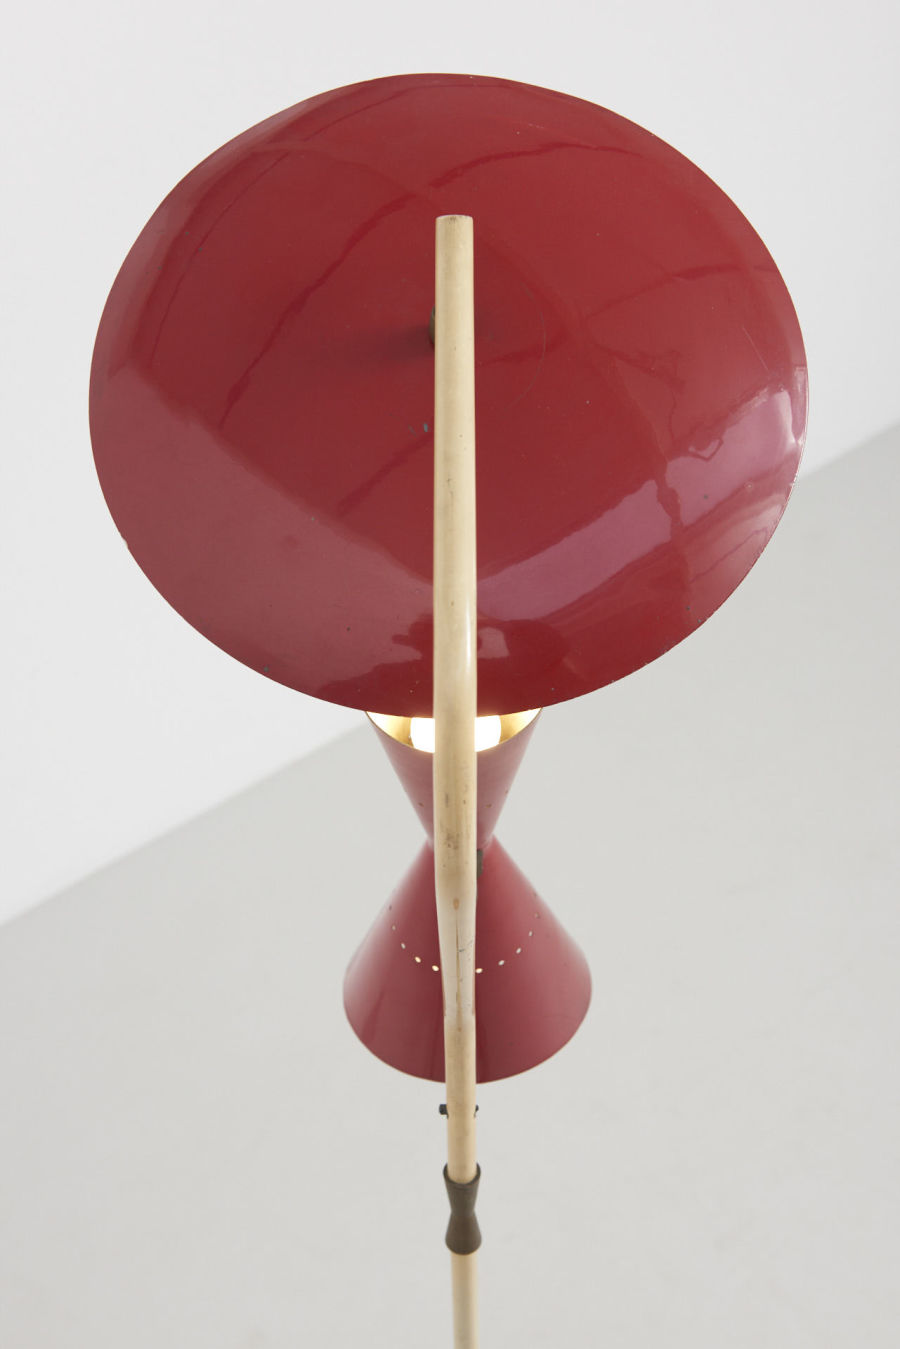 modestfurniture-vintage-2228-floor-lamp-red-indirect-up-down-red-shade-italy-195007